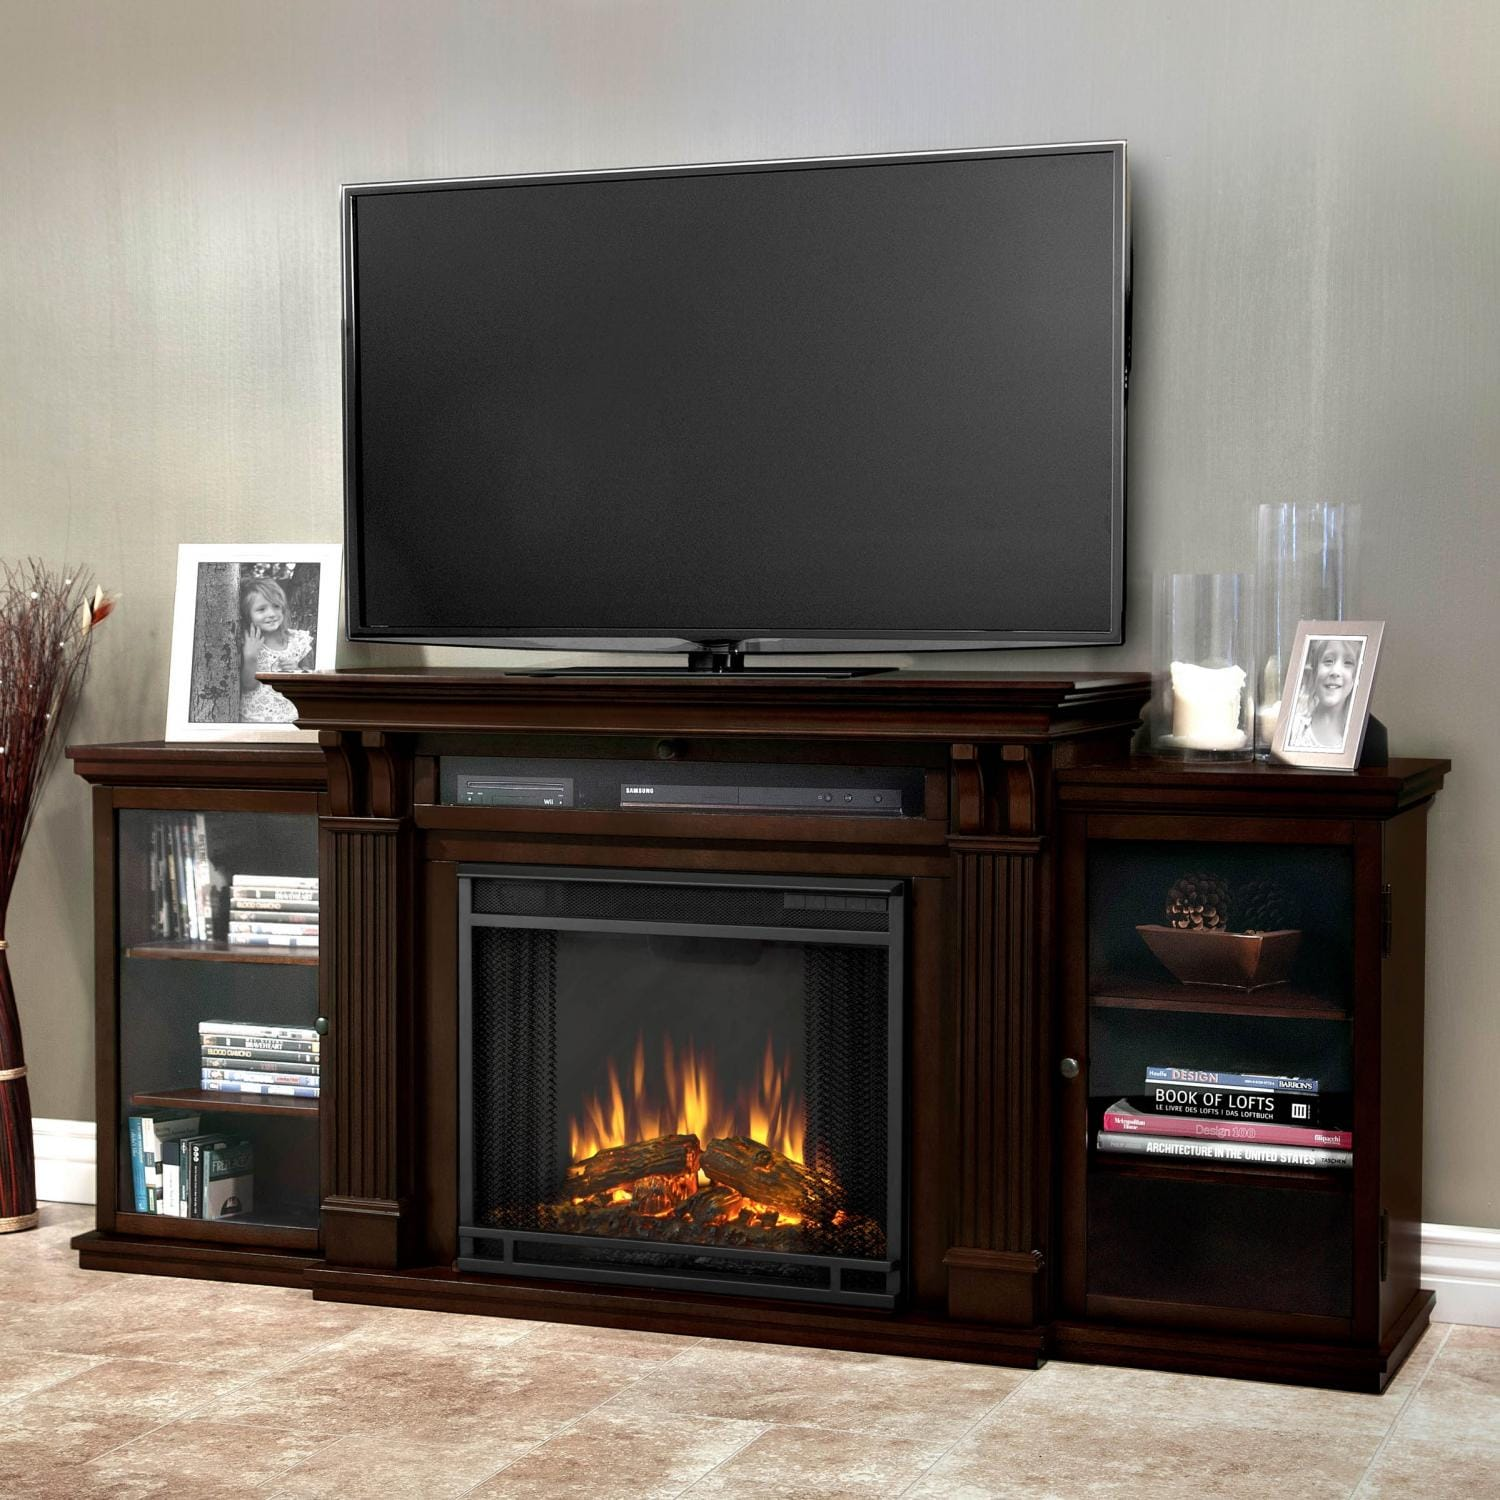 Top Rated: Best Electric Fireplace Entertainment Centers : Gas Log Guys